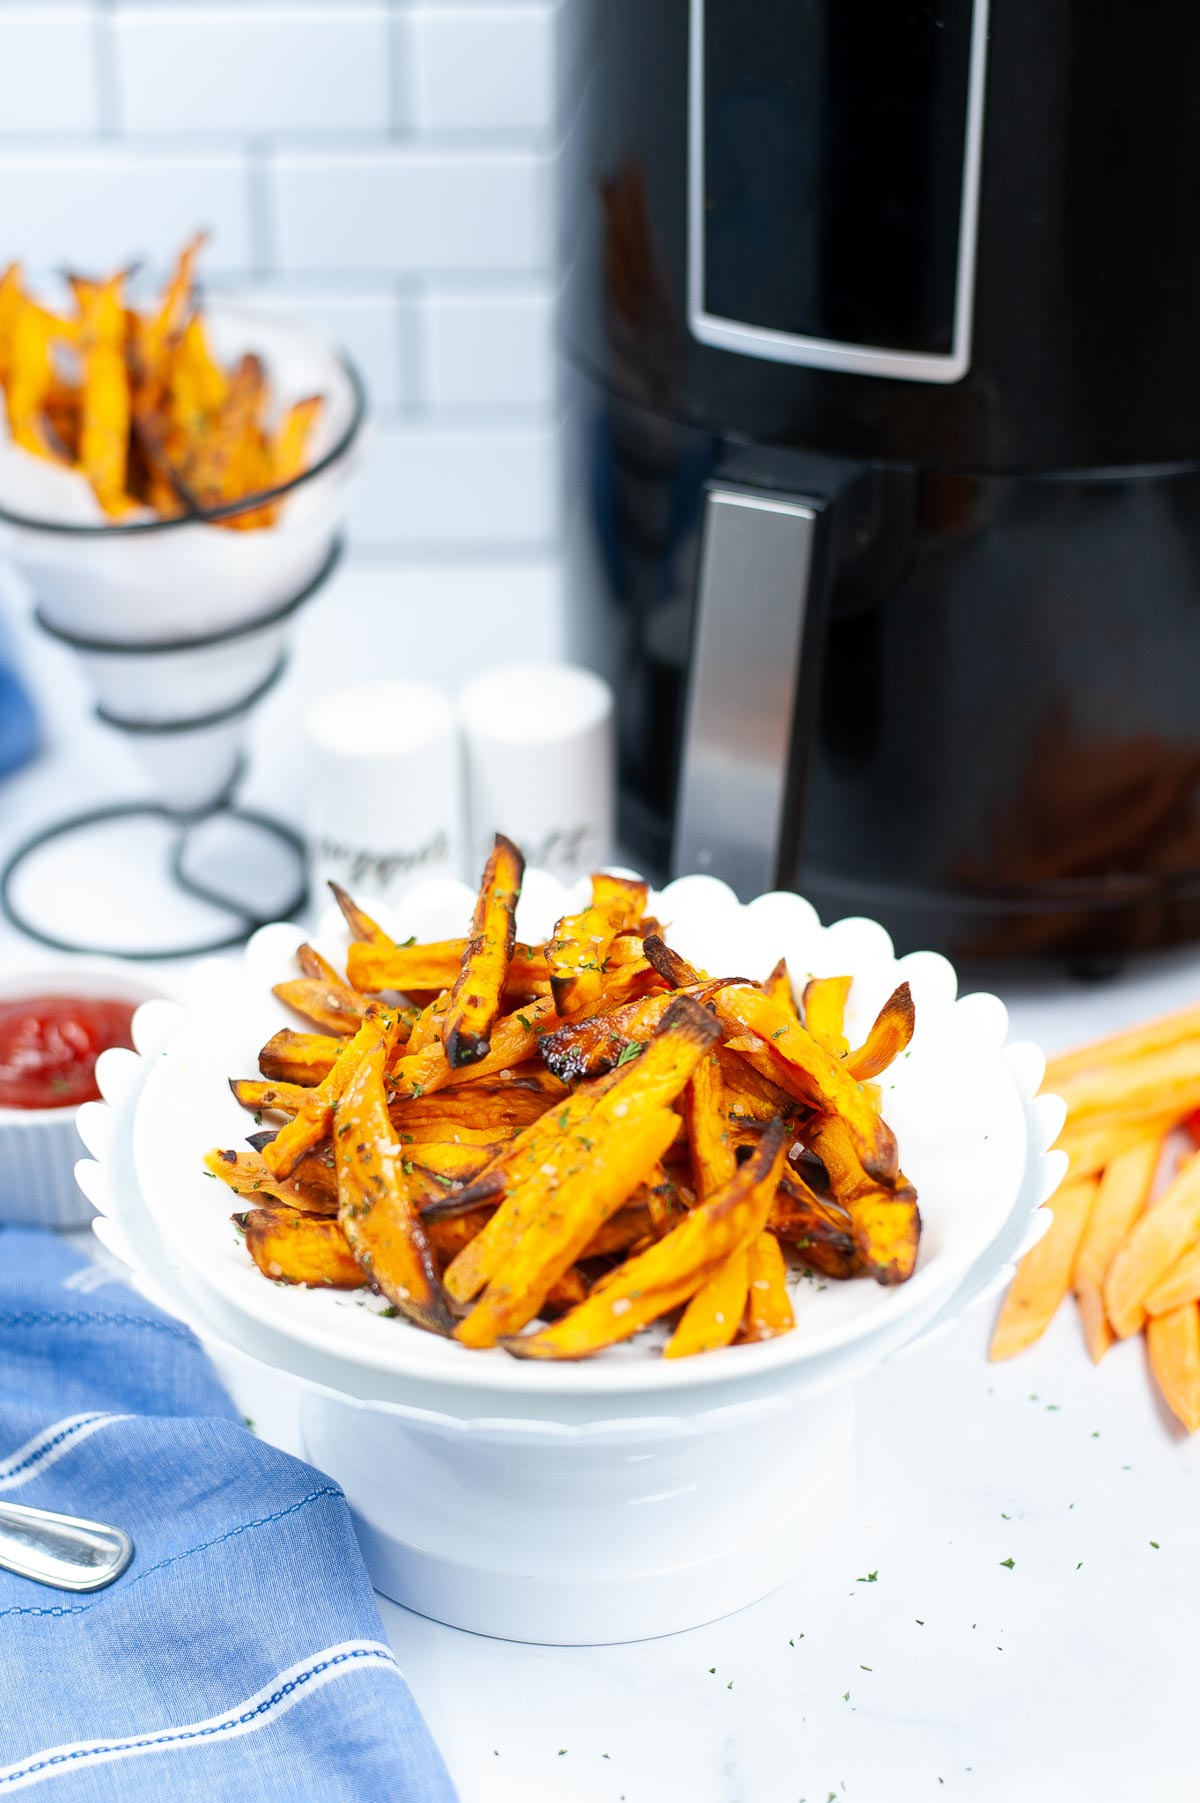 bowl of sweet potato fries straight from the air fryer and serving dish with ketchup.